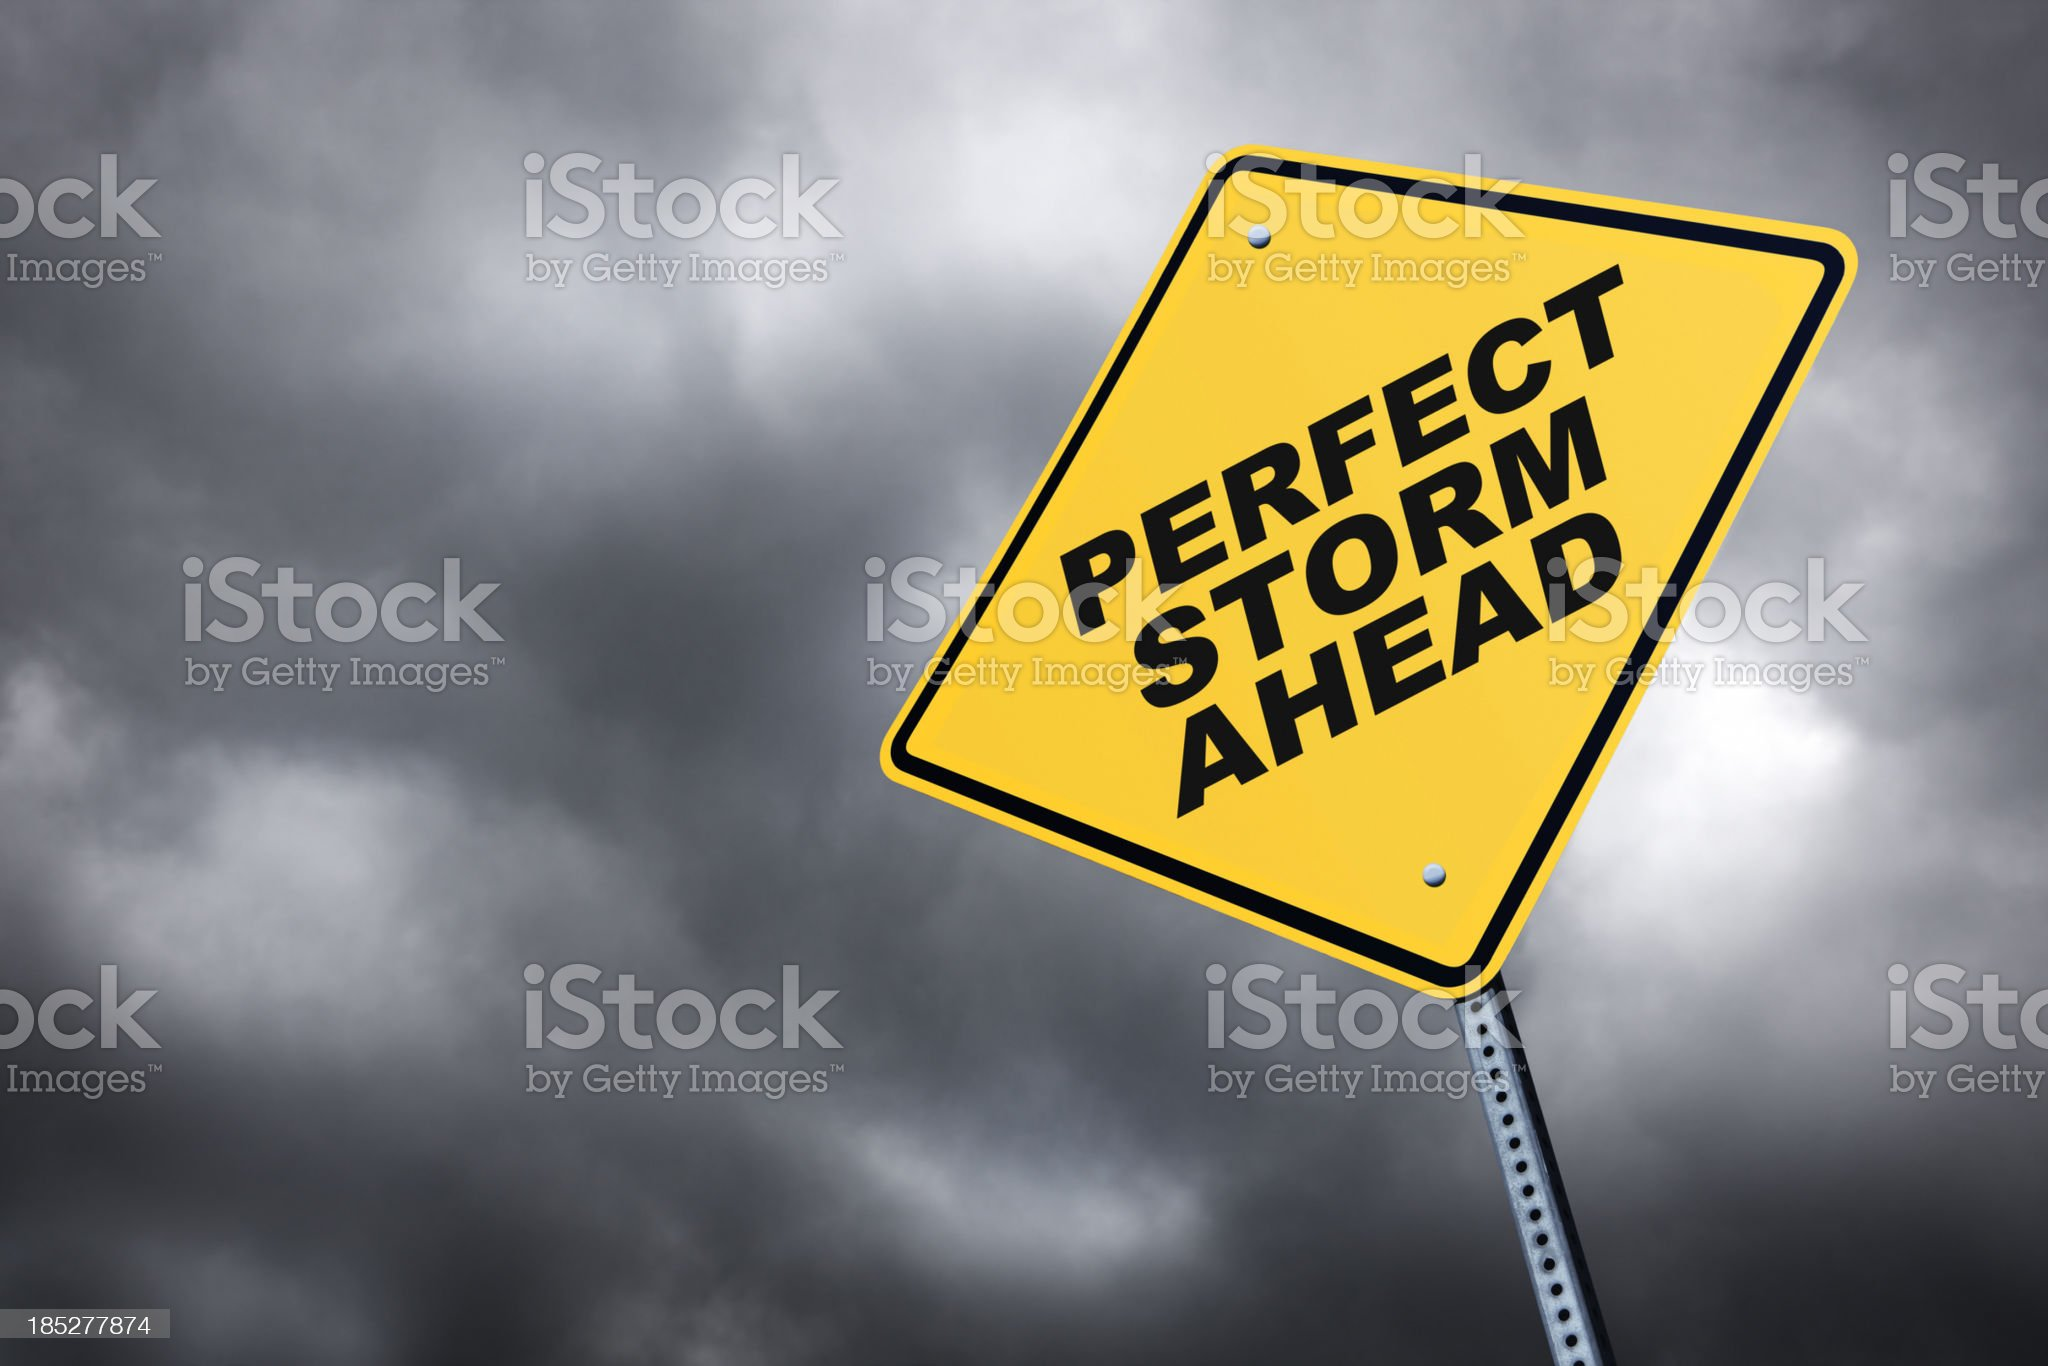 Perfect Storm Ahead royalty-free stock photo